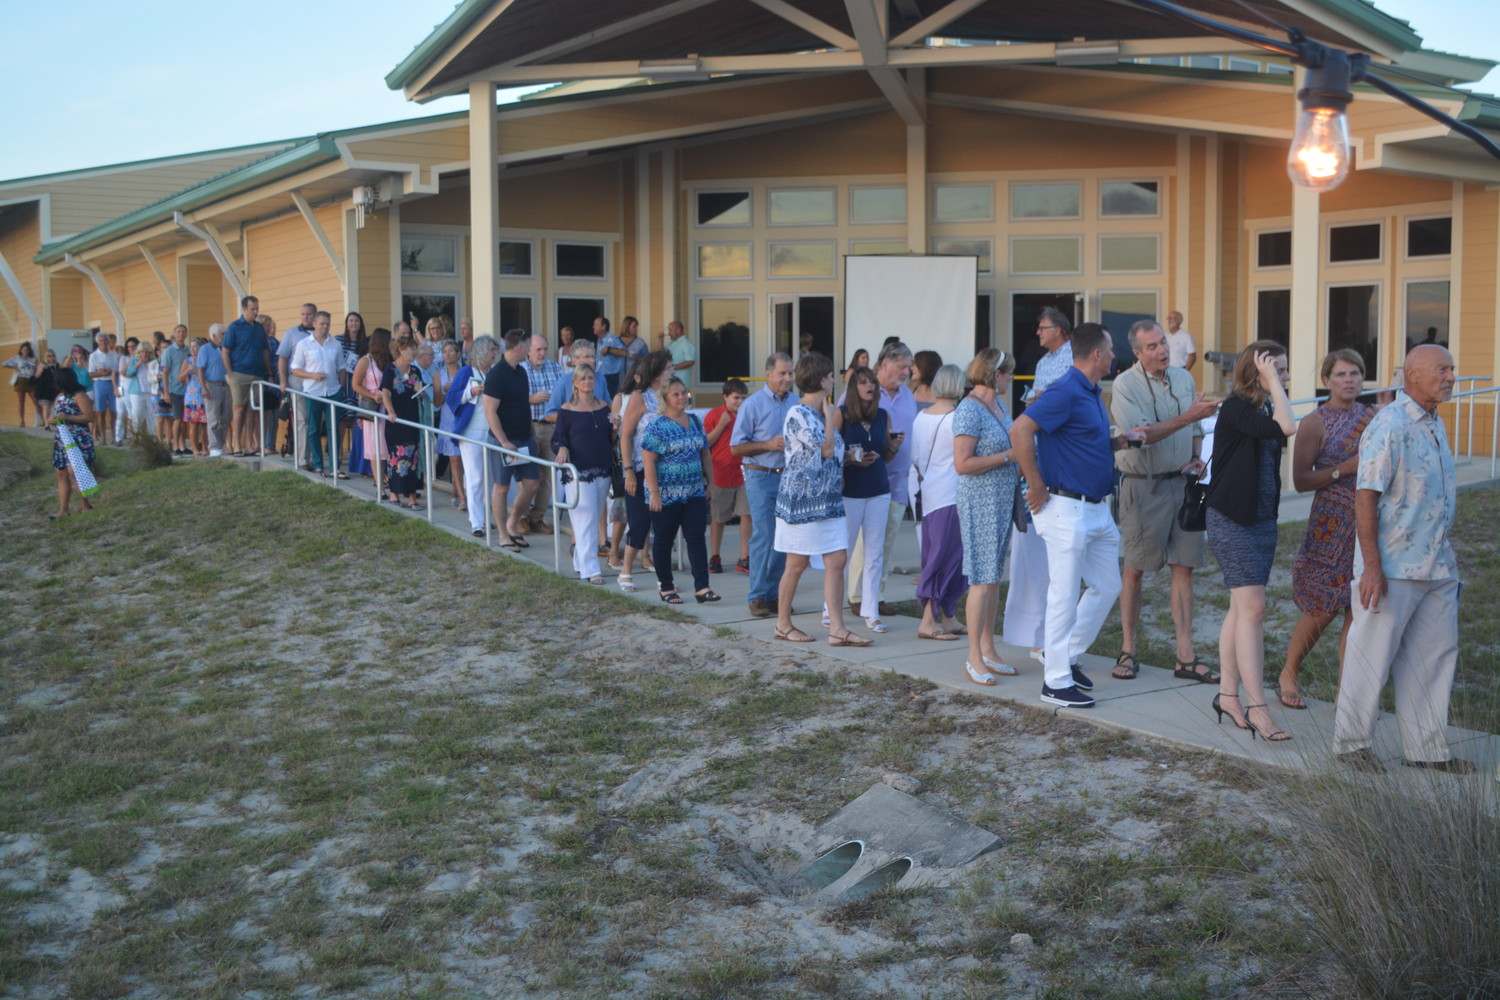 Attendees form a line as they move to the outdoor portion of the Oceanwise gala.